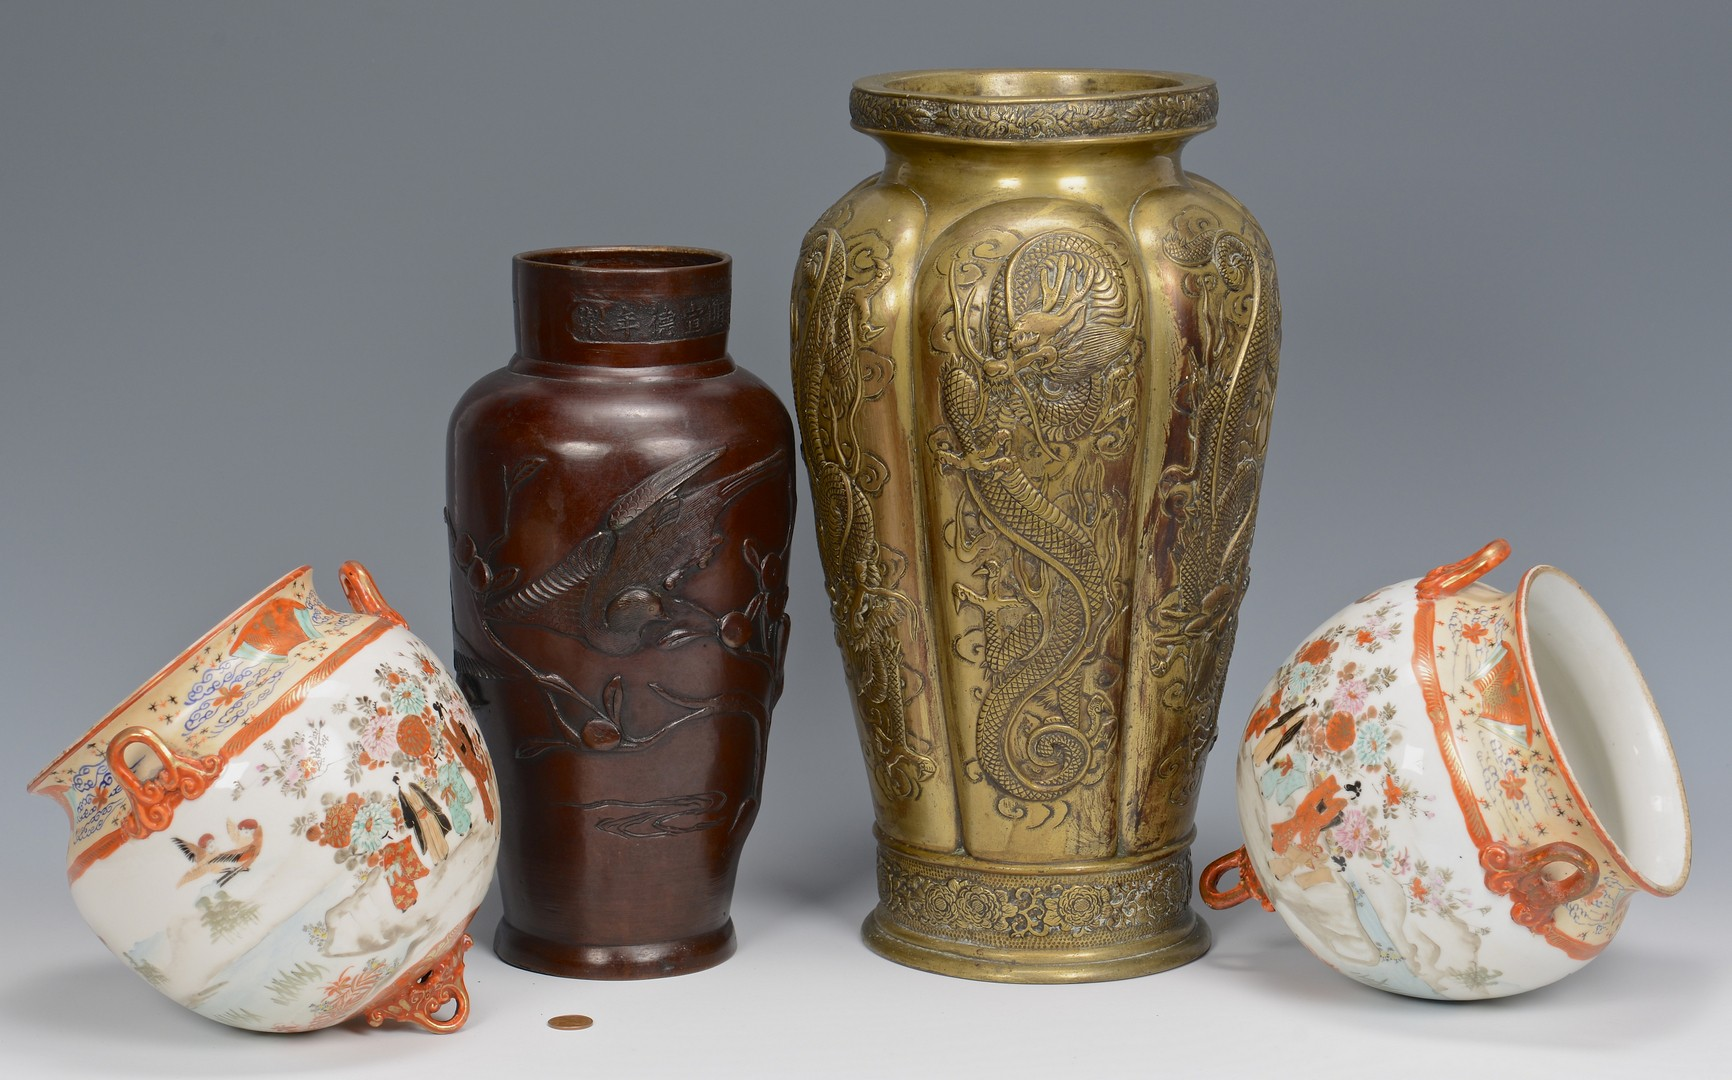 Lot 871: 4 Japanese items: 2 vases, 2 Ferners